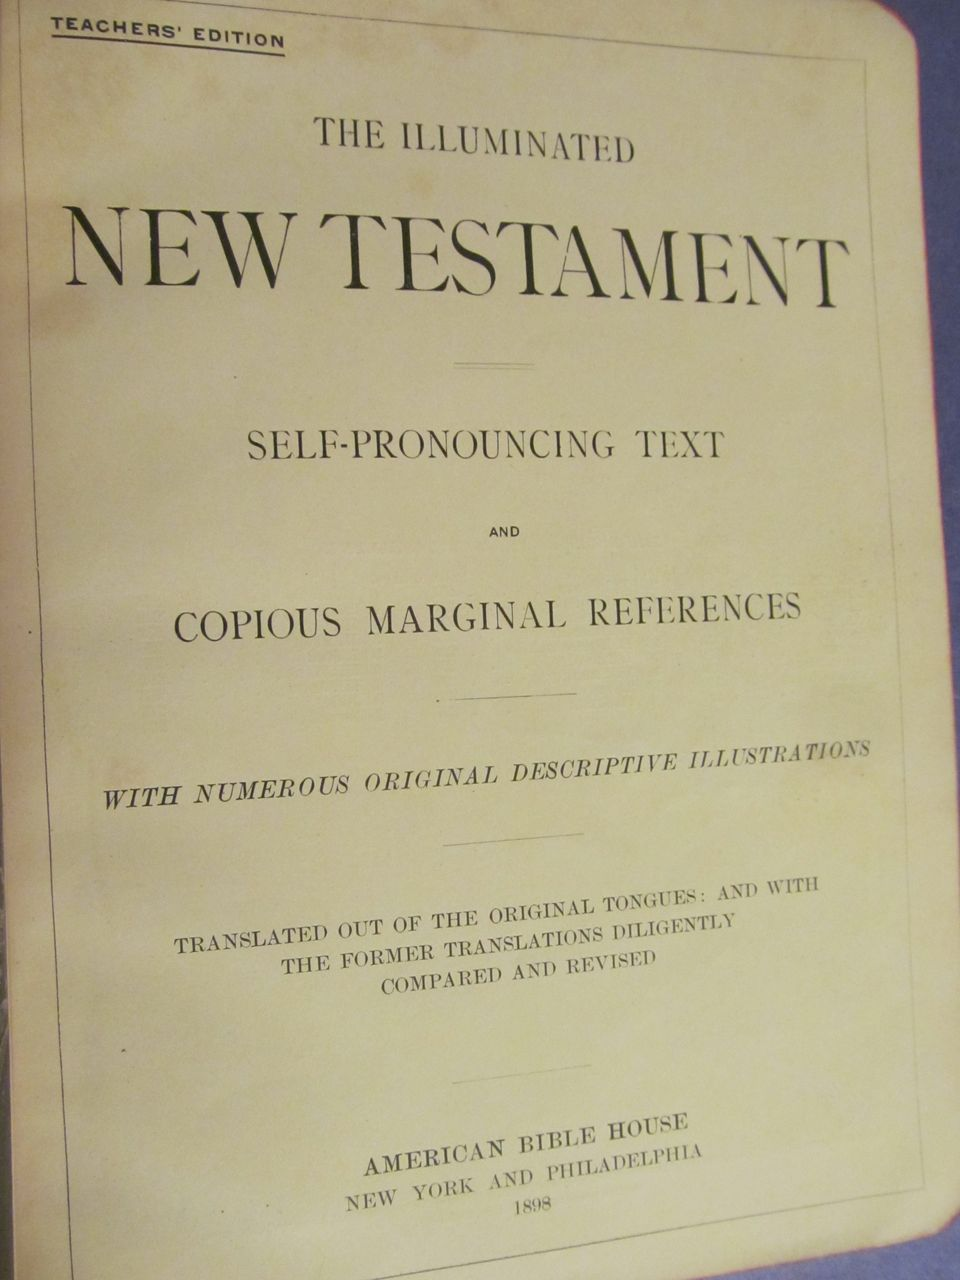 1898 Illuminated New Testament, Teachers Edition,American Bible House